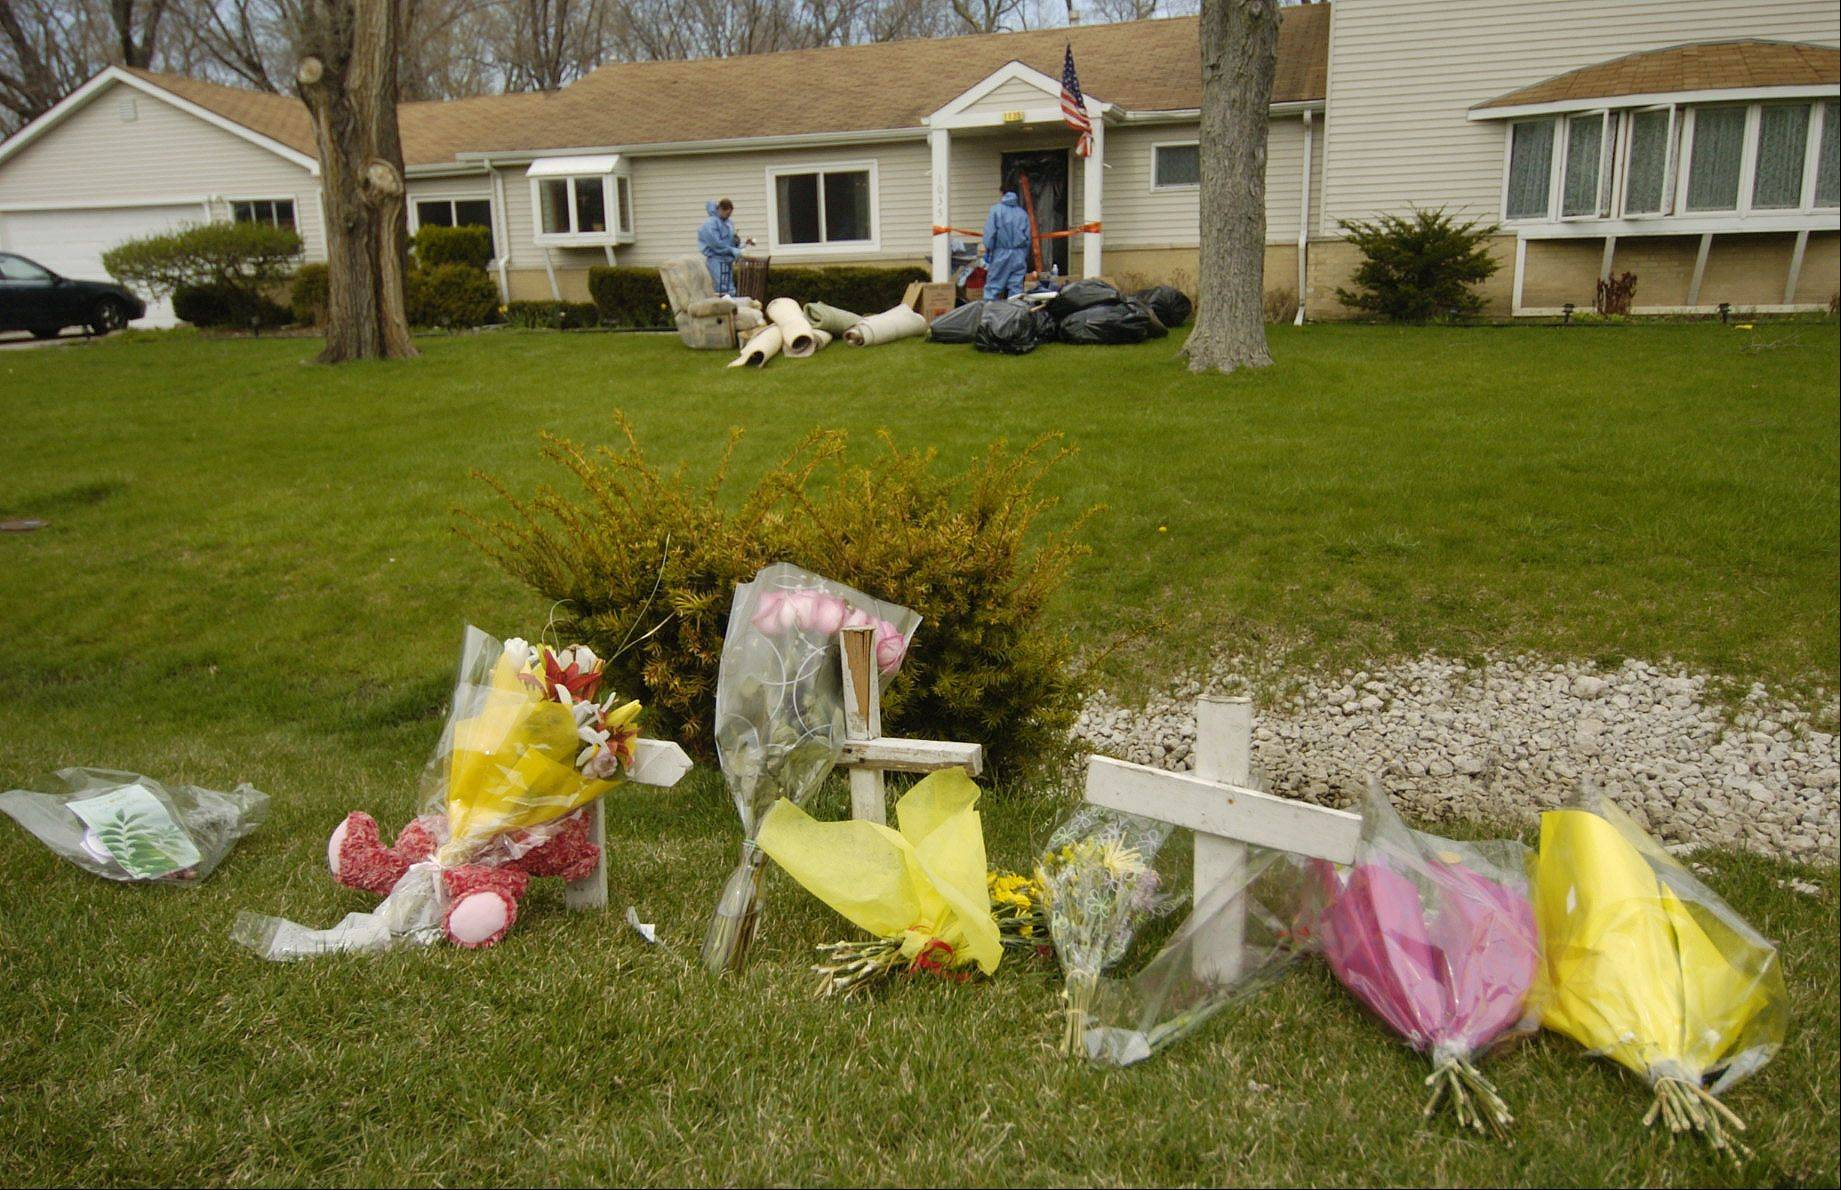 Officers, during a court hearing Tuesday, described what they found when they arrived at Engelhardt home in Hoffman Estates and found three people murdered.